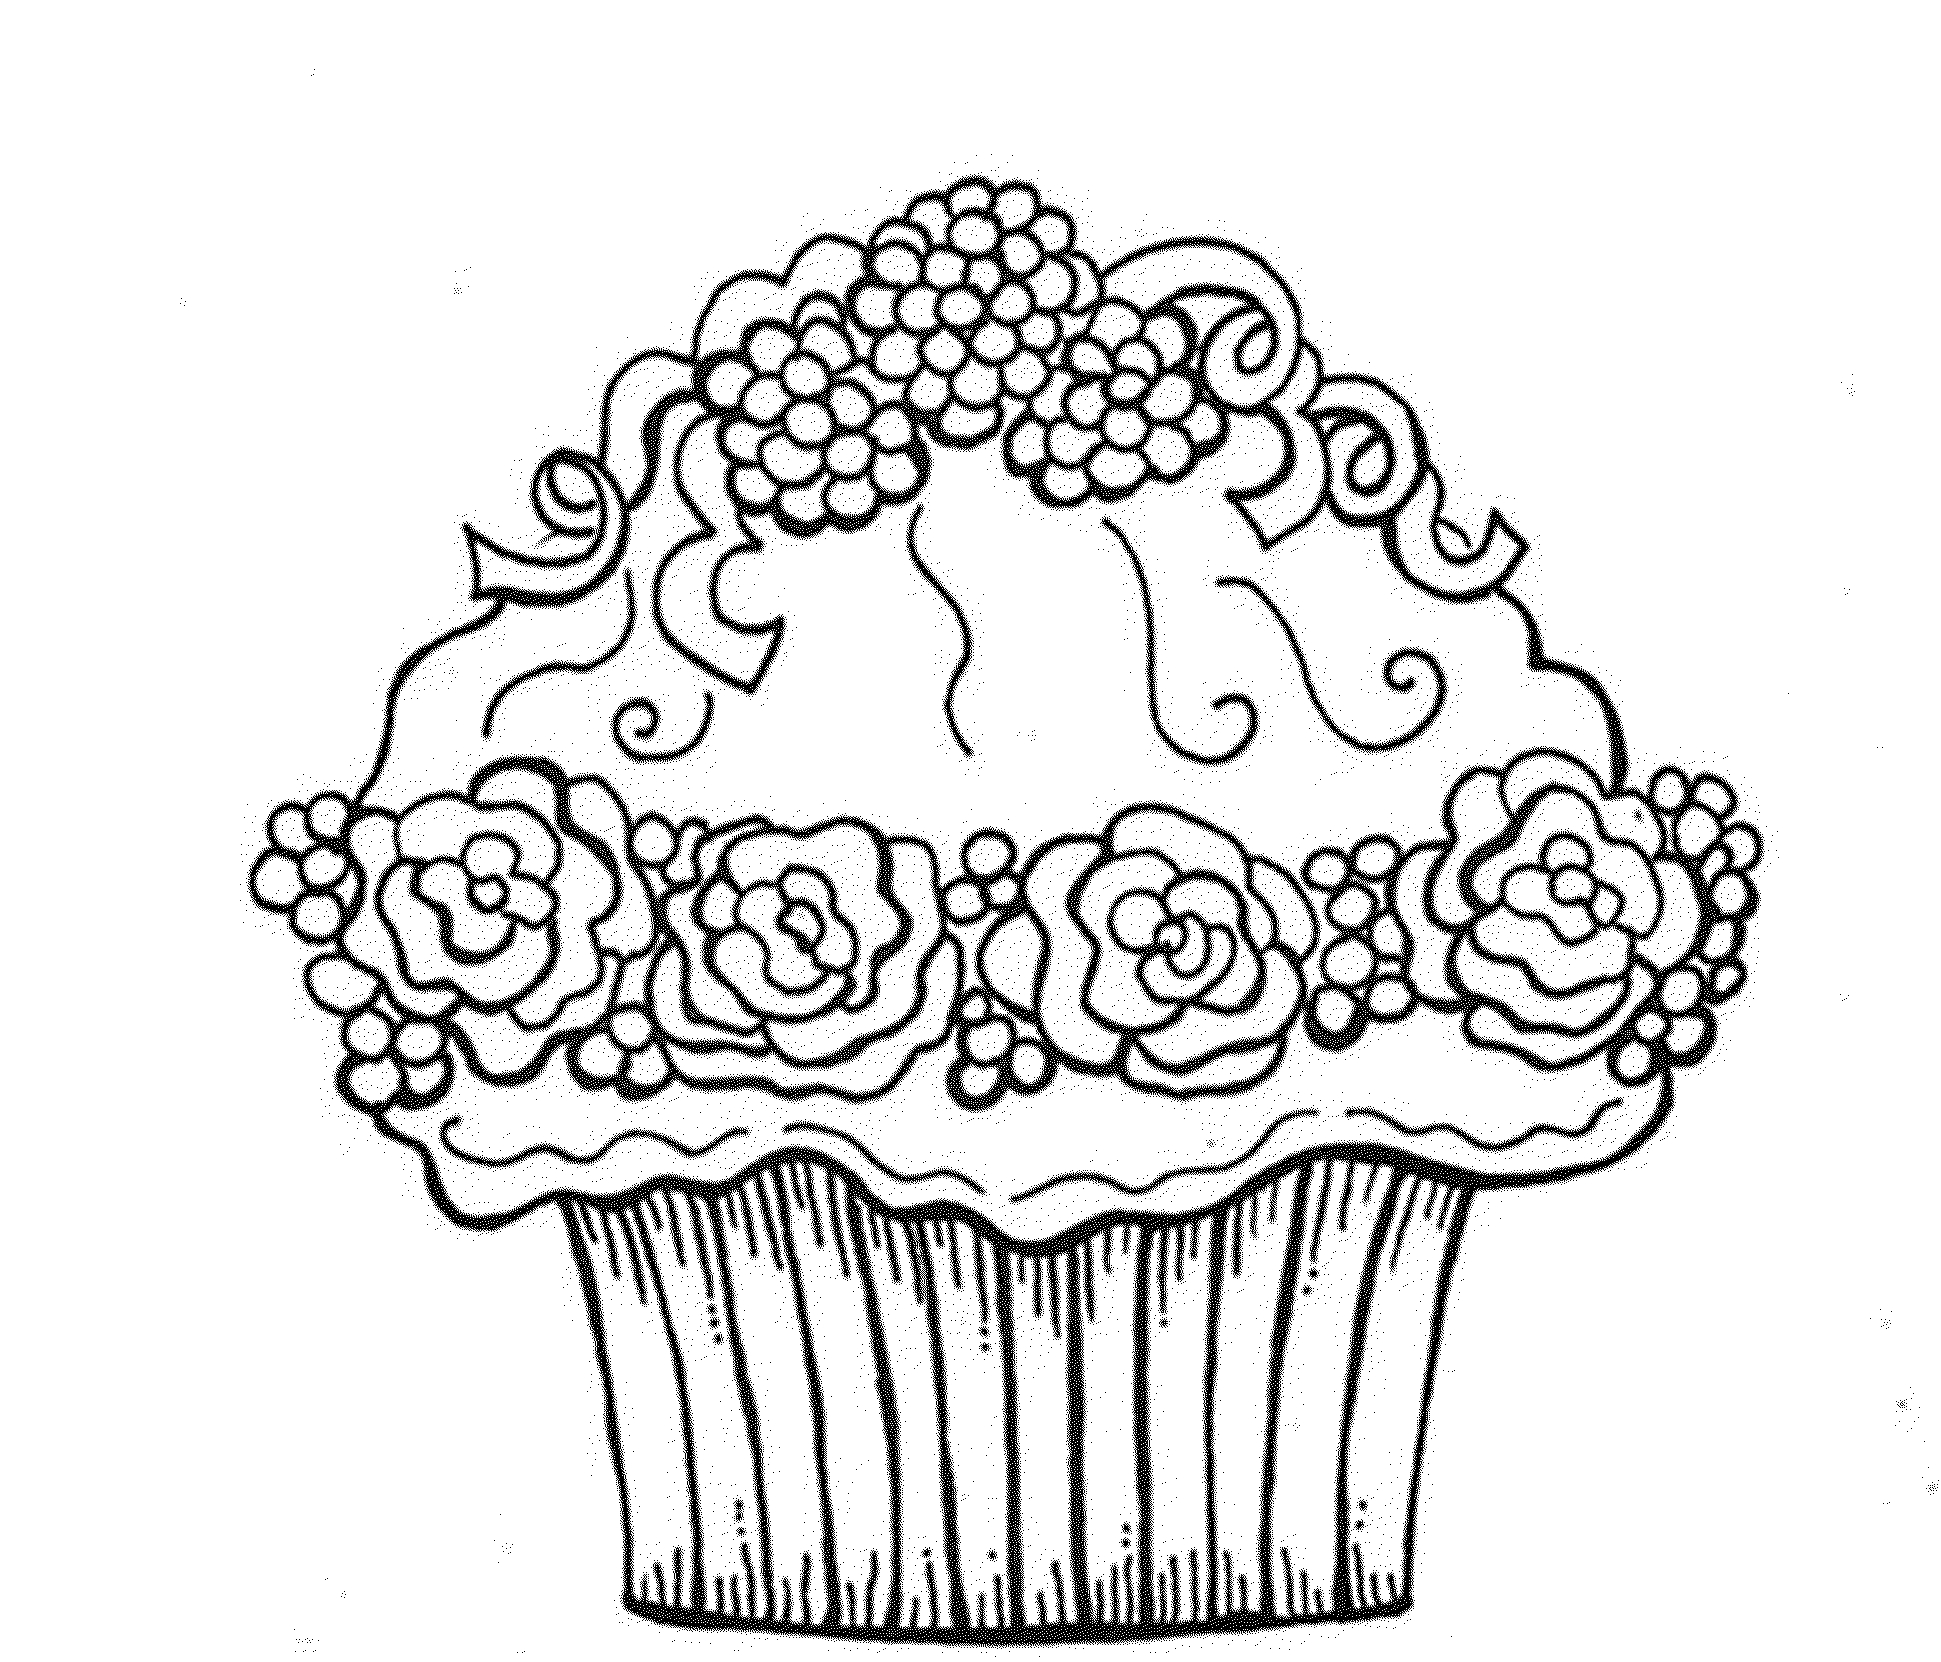 Coloring Pages Of Cupcakes Gallery Photos | Cupcake concernant Coloriage Cupcake A Imprimer